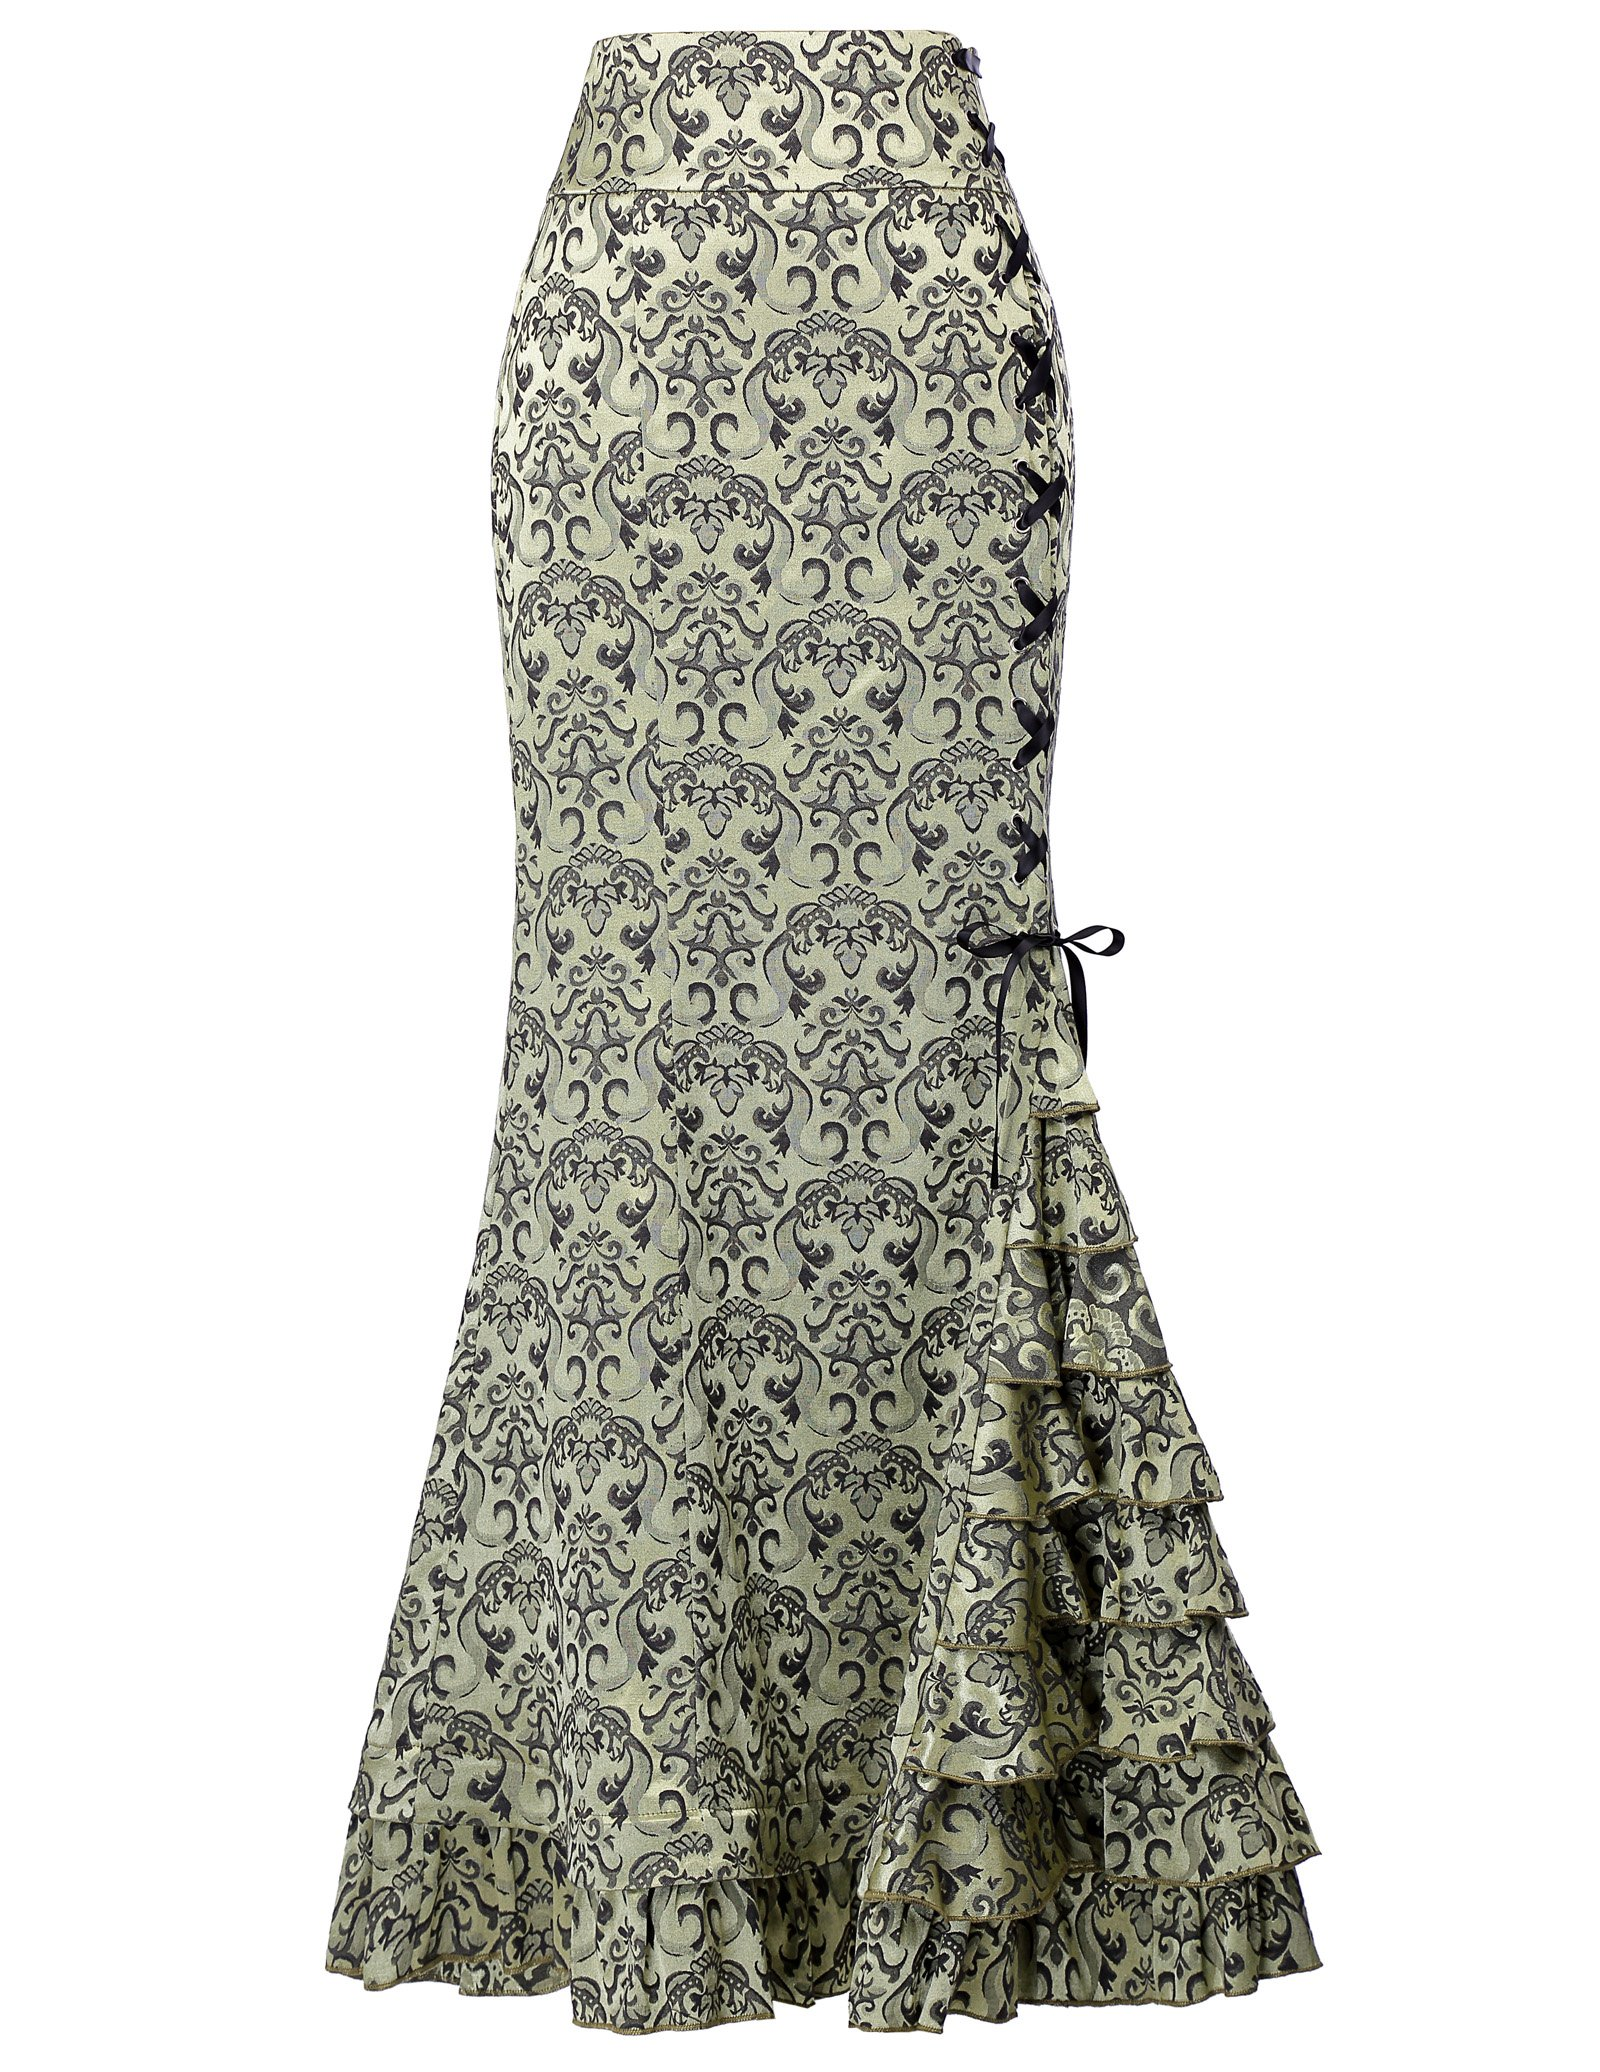 Women's Victorian Steampunk Mermaid Maxi Skirt for Halloween Size 6 Light Green by Belle Poque